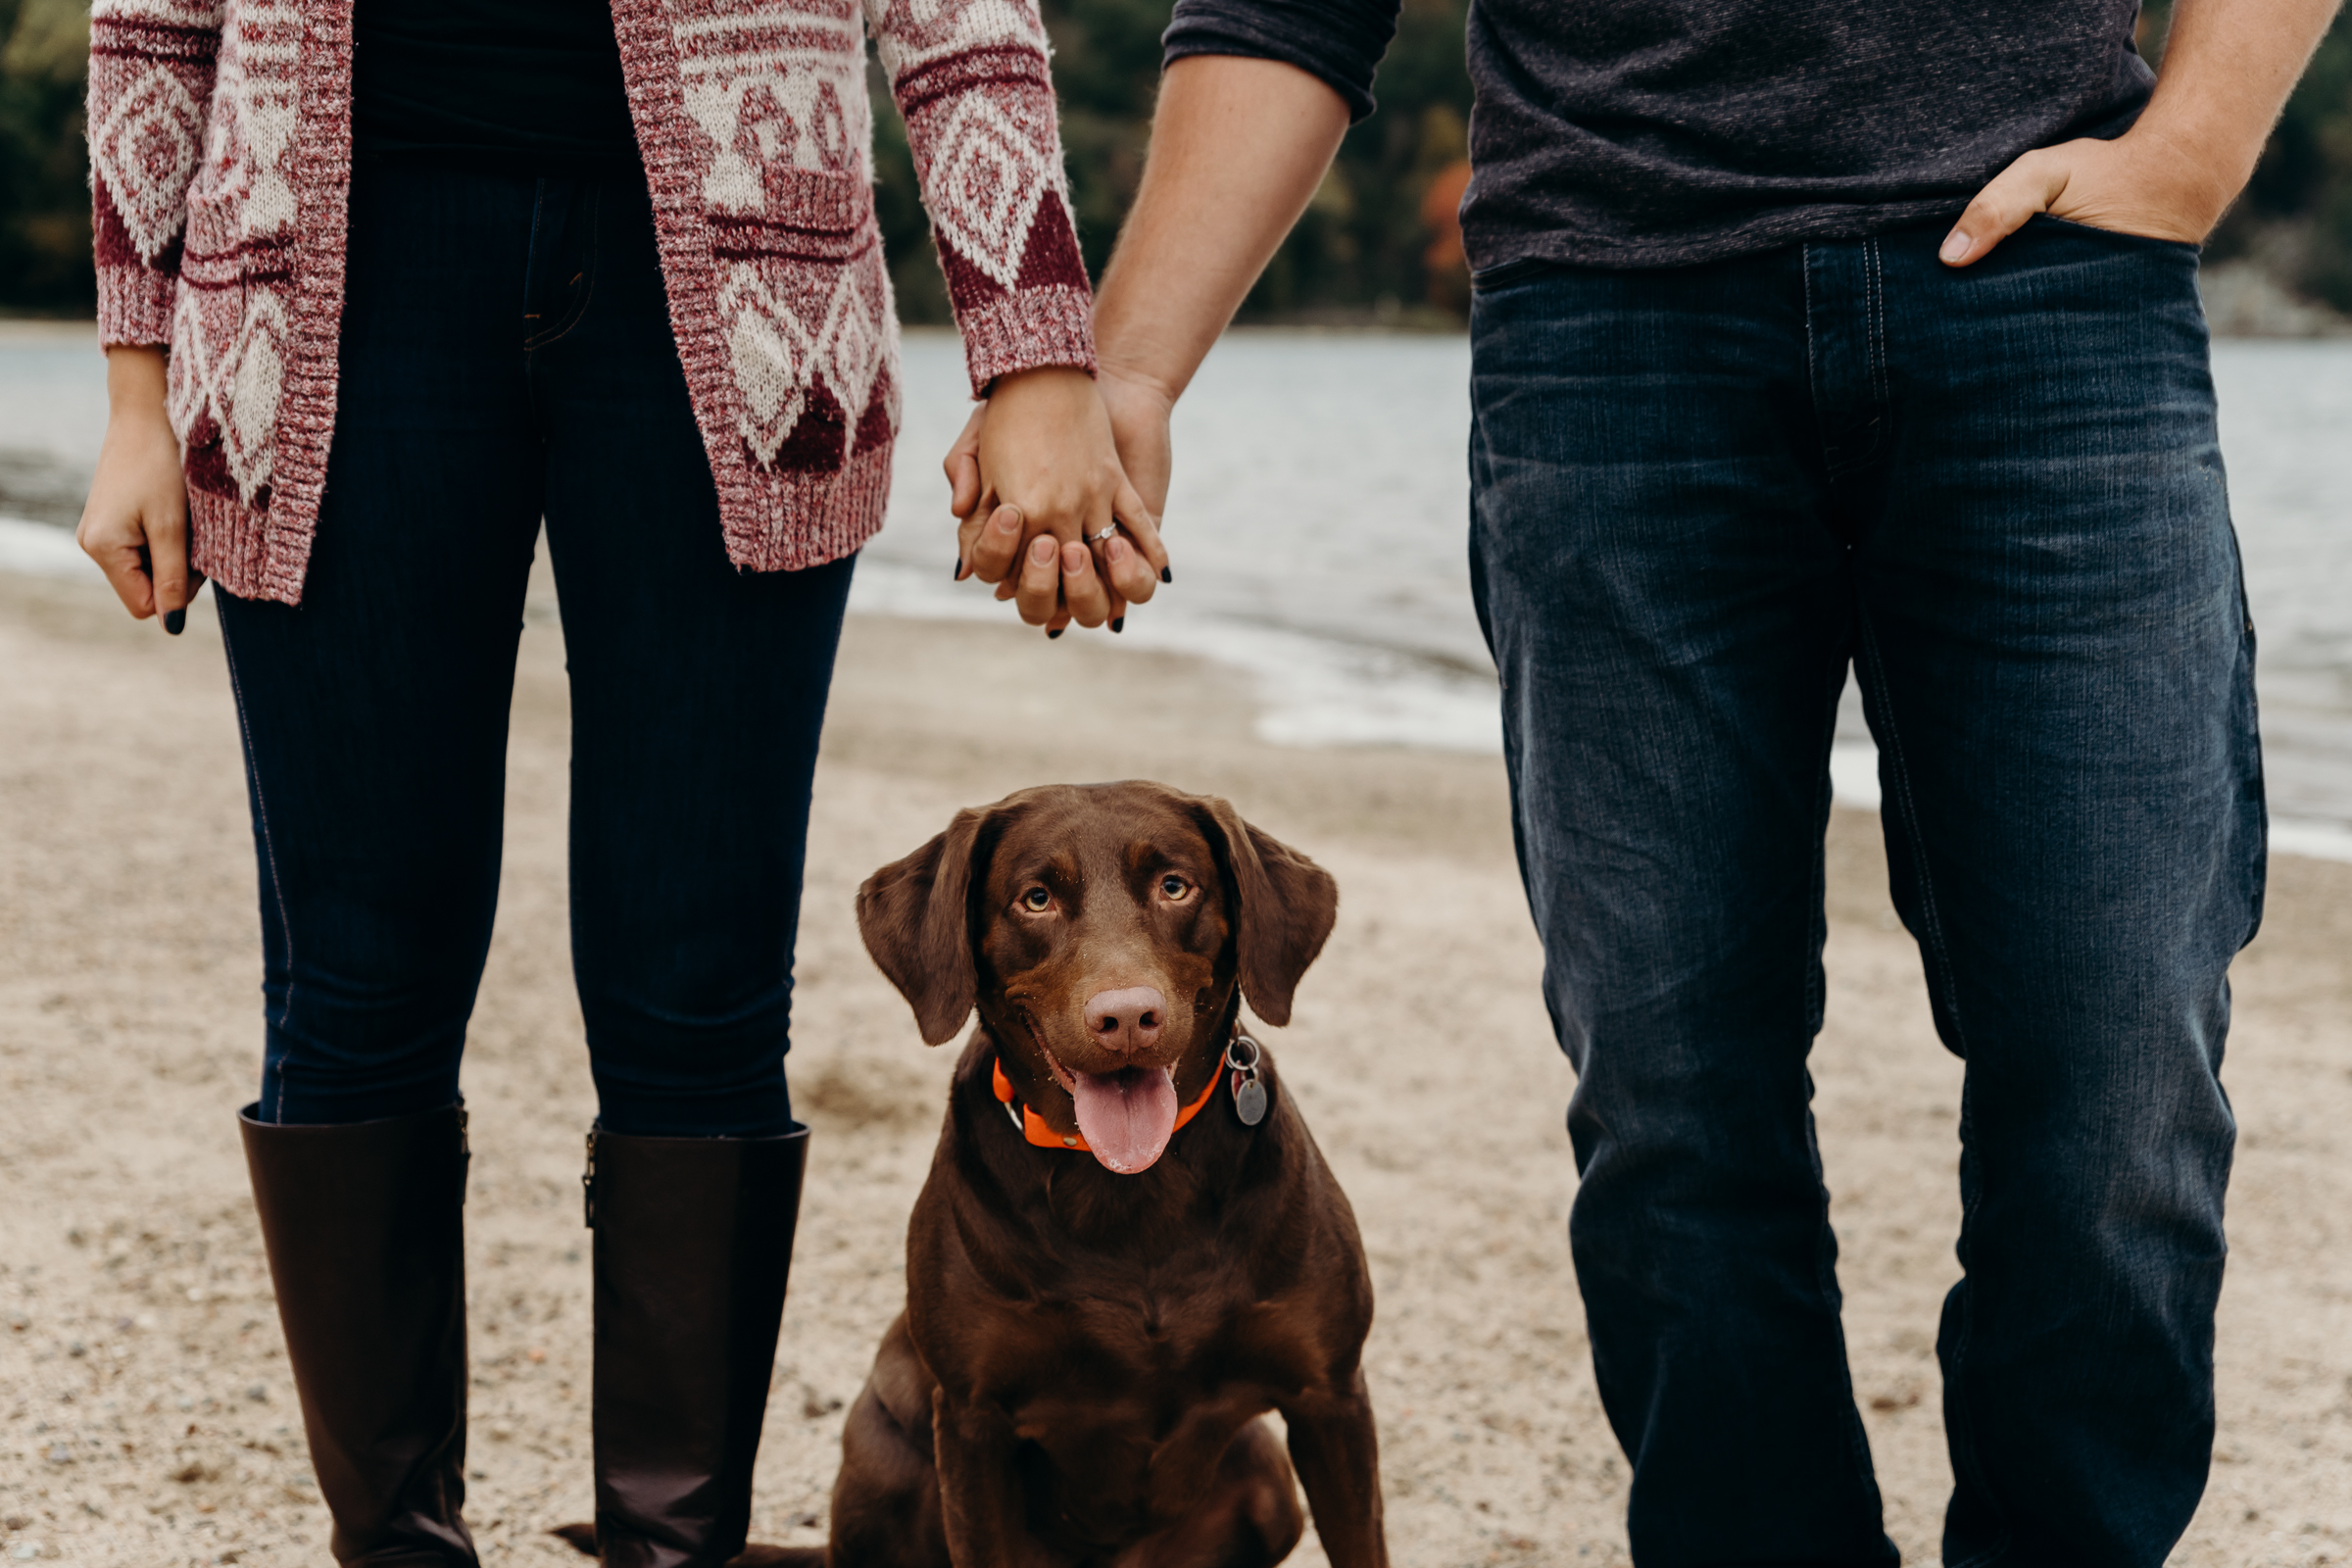 Engaged couple holds hands with their chocolate lab dog sitting in between them.